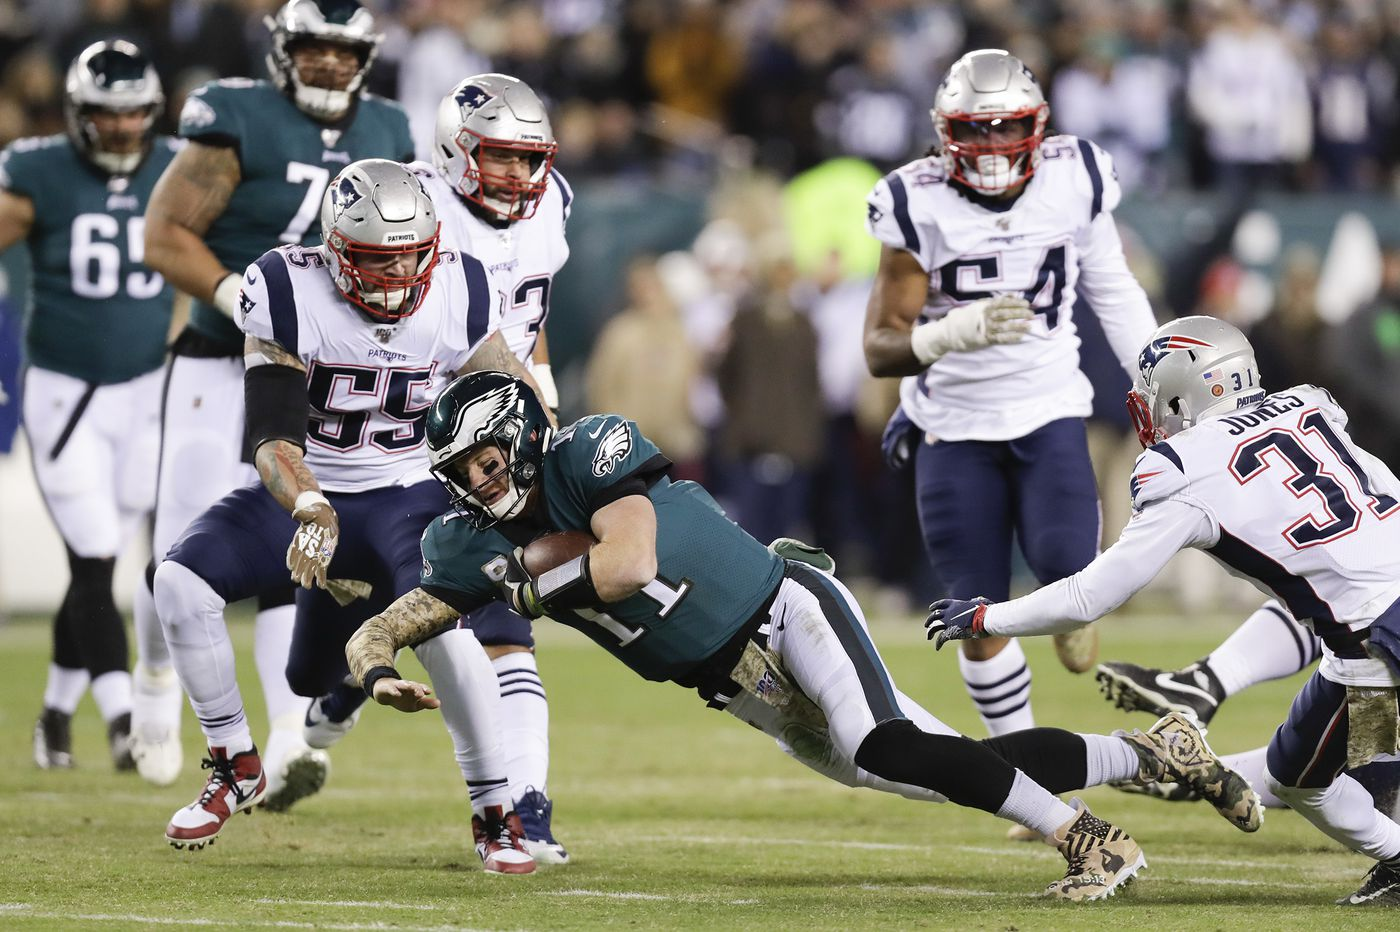 Eagles-Patriots Up-Down Drill: Carson Wentz didn't deliver, but cornerbacks excelled